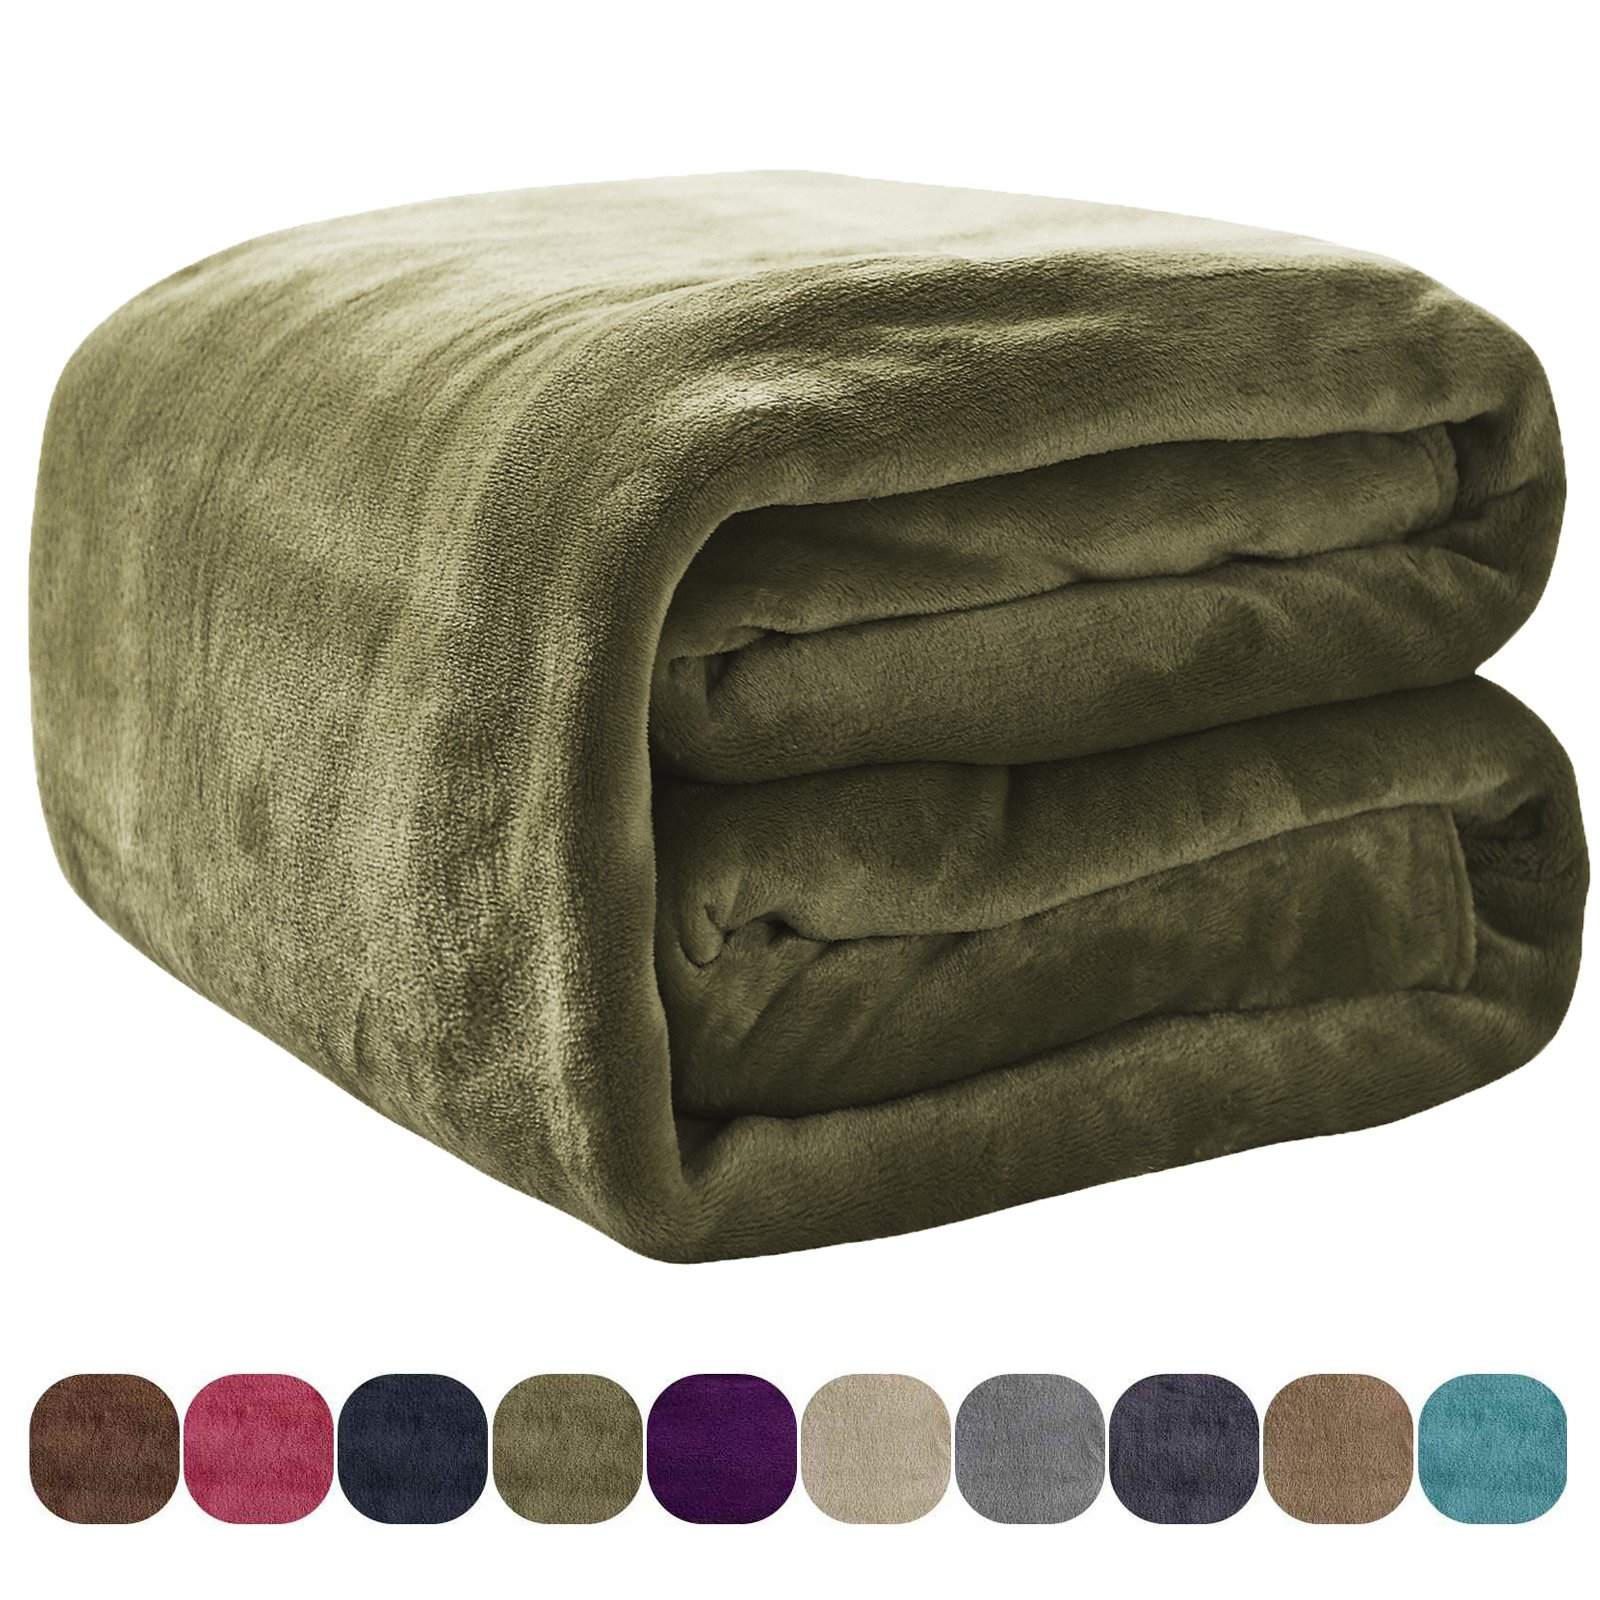 VEEYOO Flannel Fleece Bed Blanket Twin Size - All Seasons Lightweight Luxury Plush Microfiber Blankets for Bed Couch Sofa, Olive Green